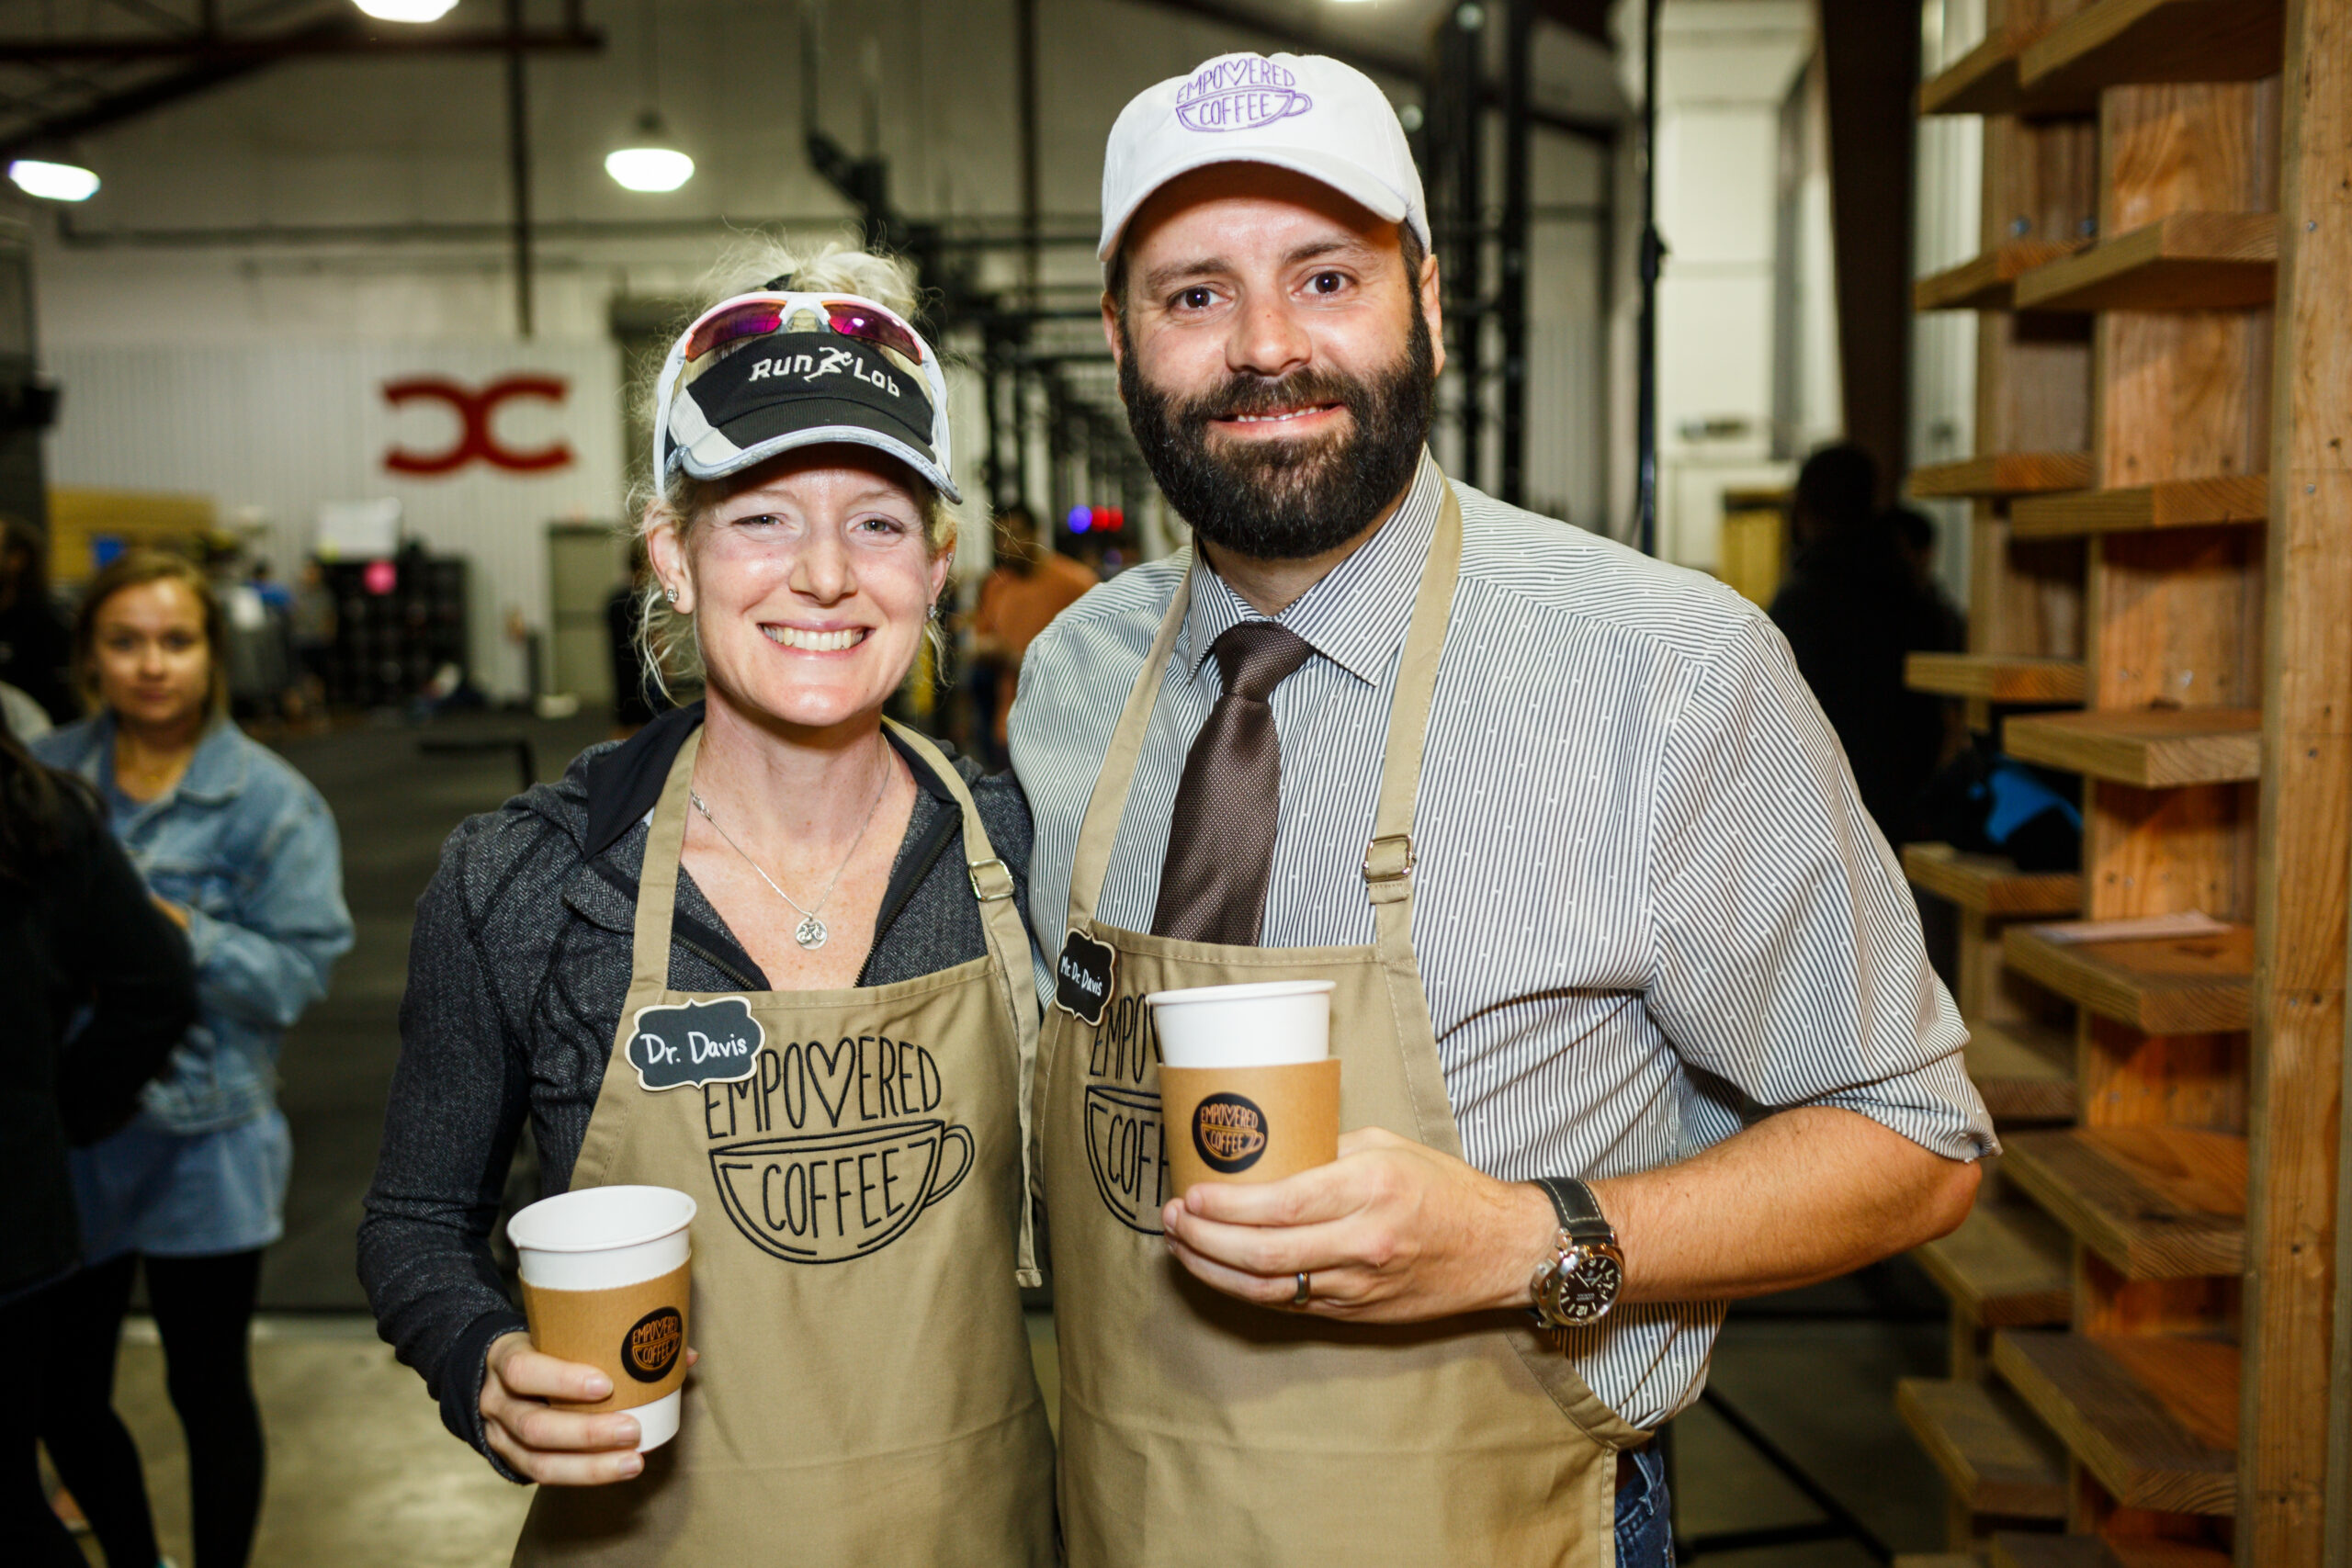 Owners of Empowered Coffee in Austin